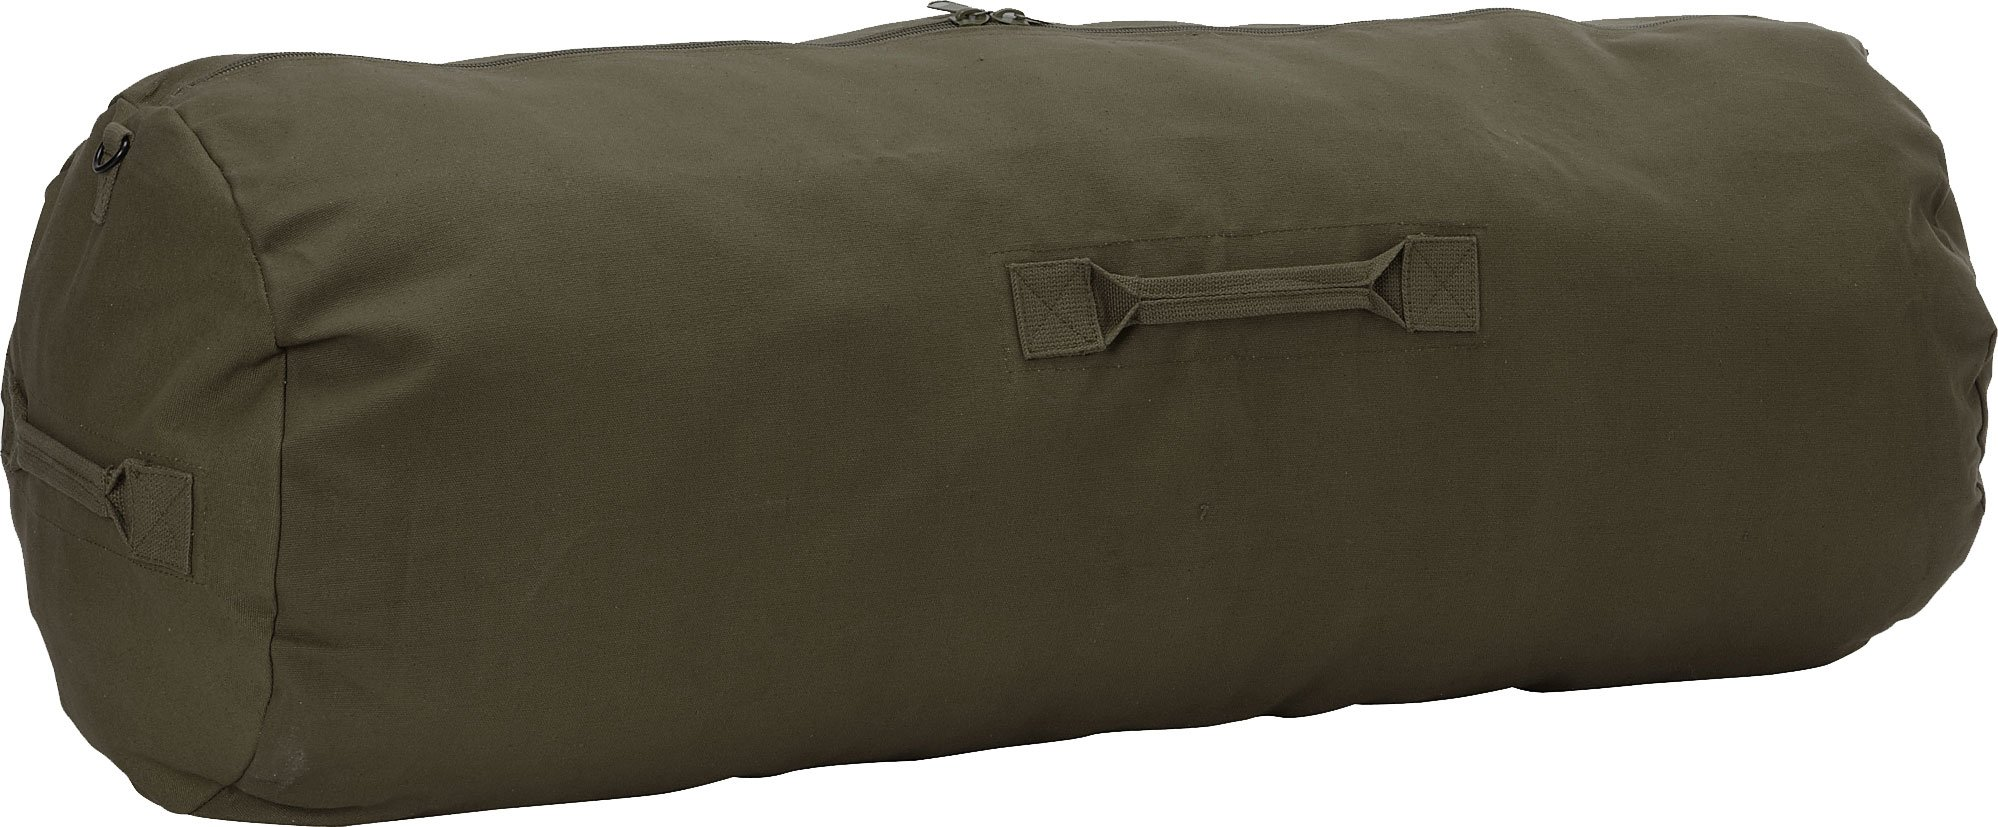 Army Universe Olive Drab Giant Side Zipper Canvas Heavy Duty Military Duffle Bag (30'' x 50'')